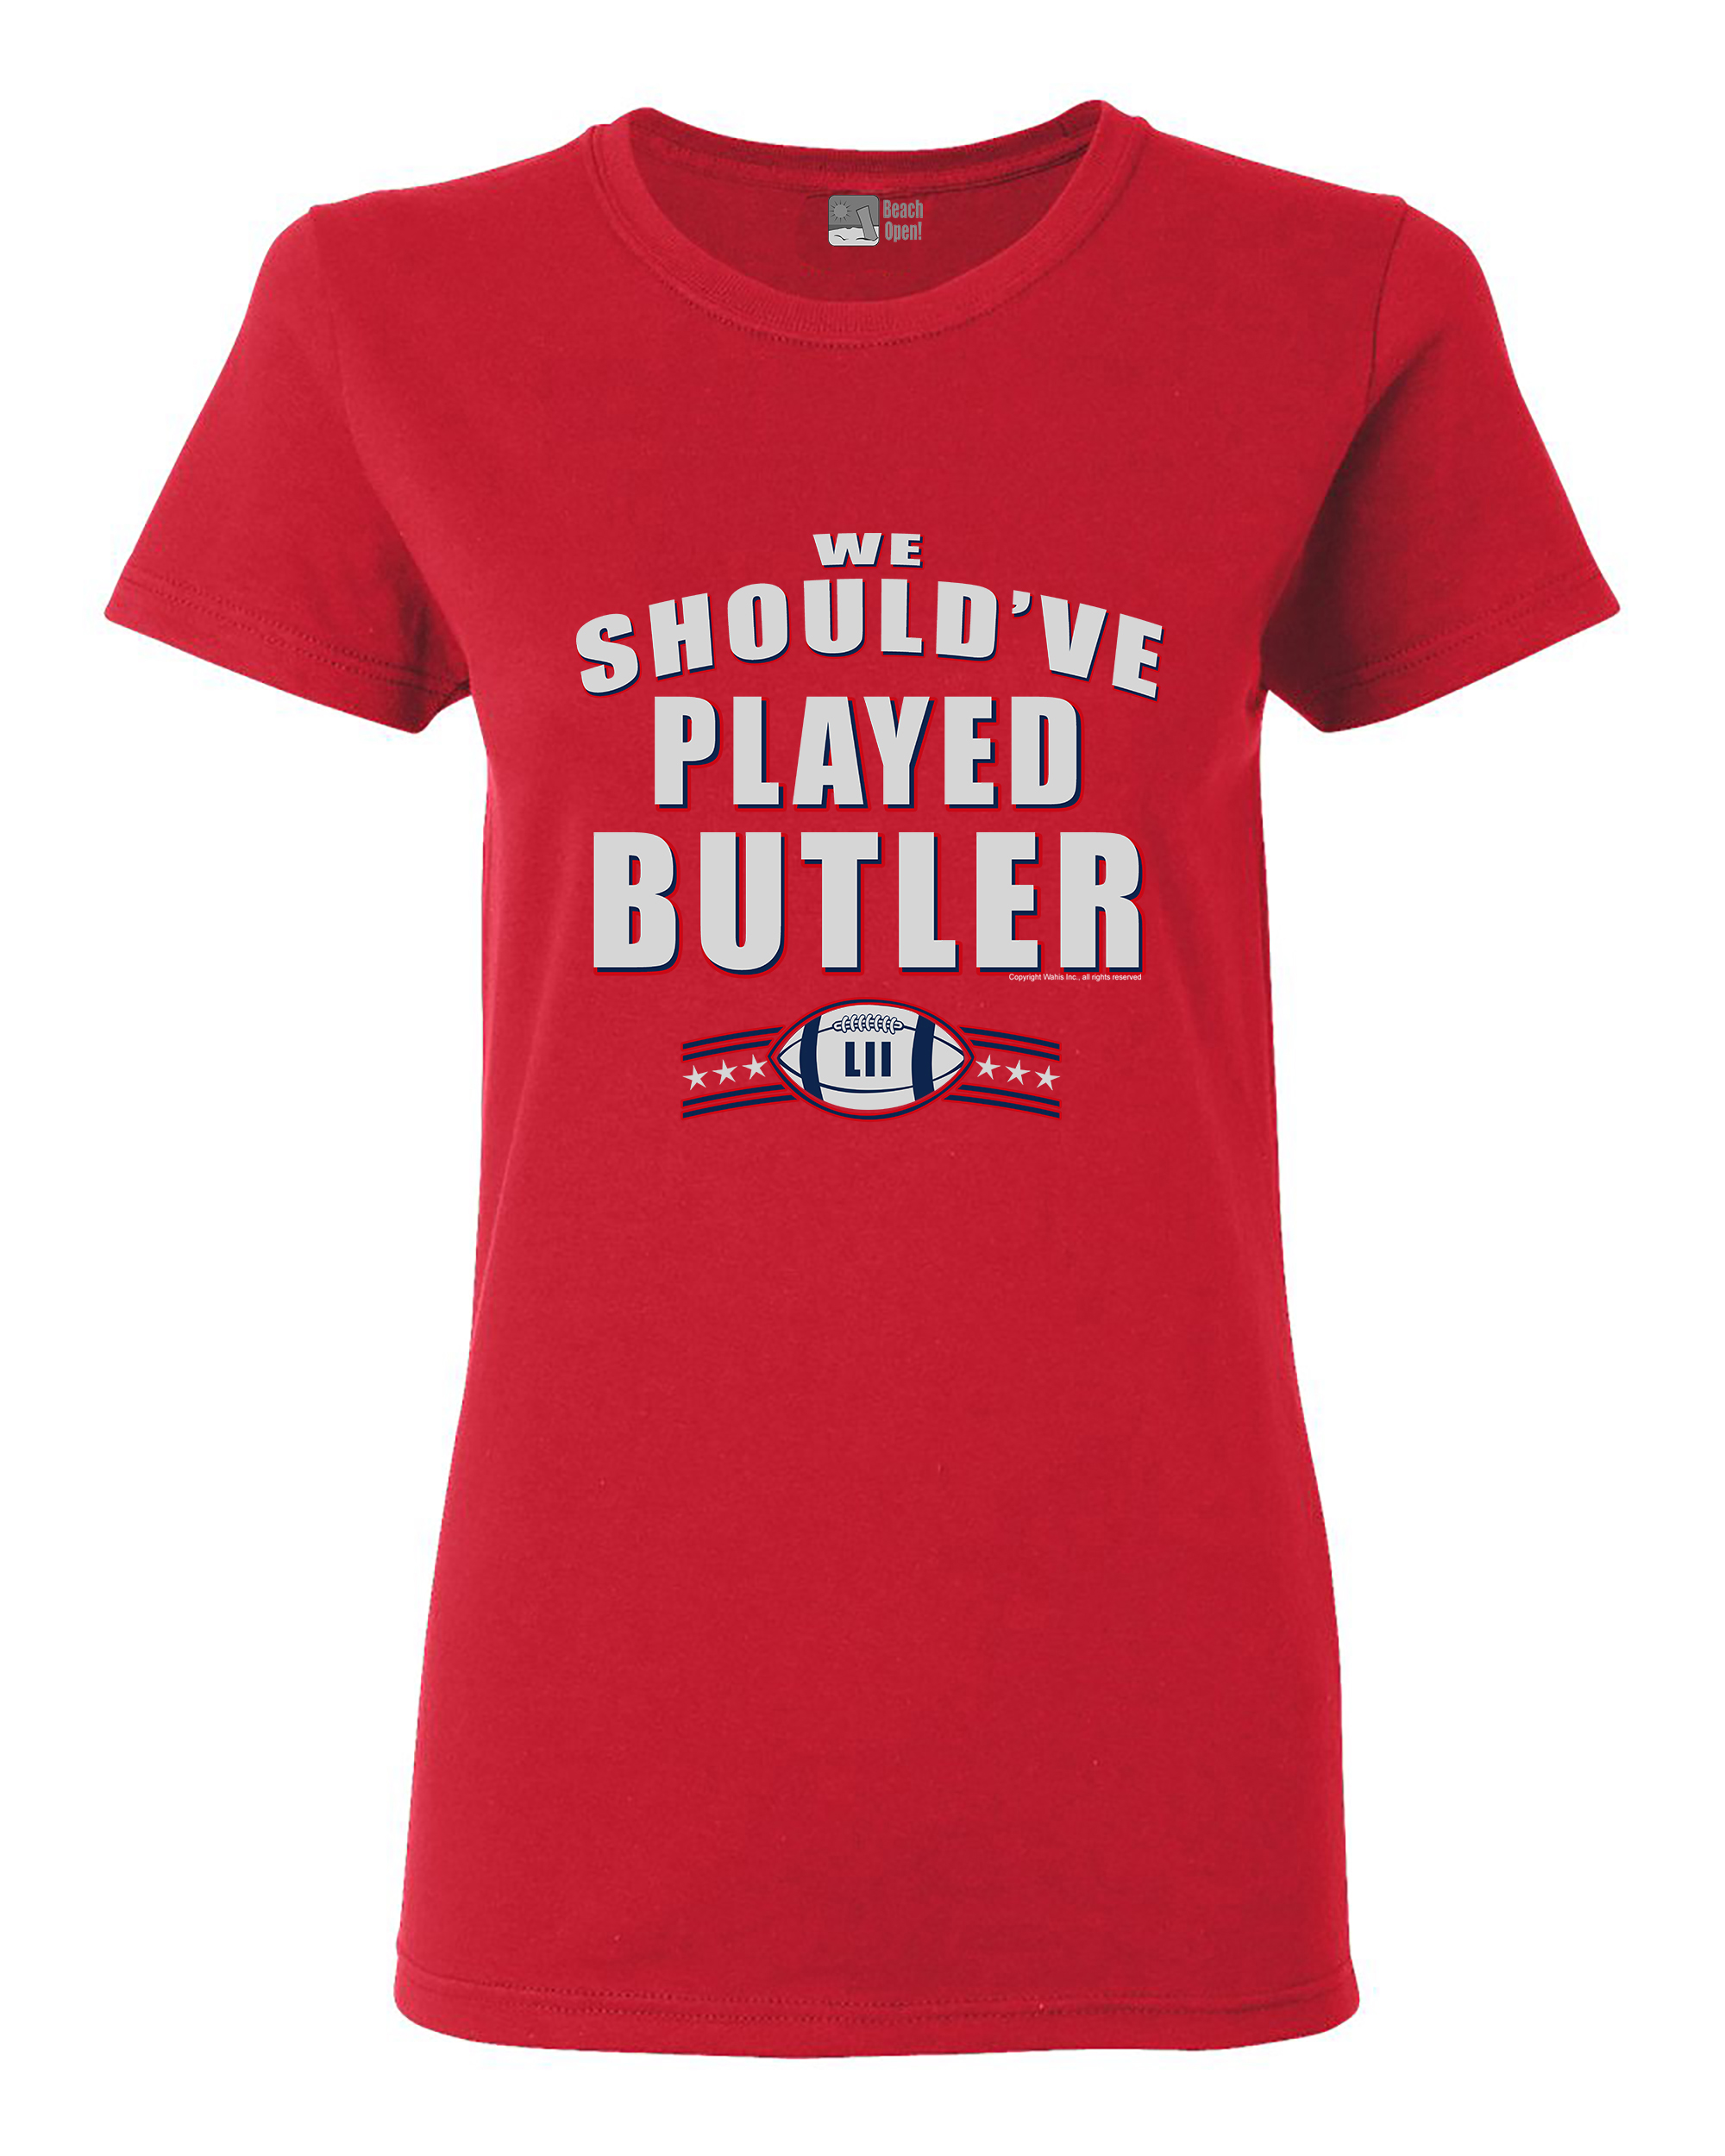 Ladies We Should've Played Butler New England Football DT T-Shirt Tee